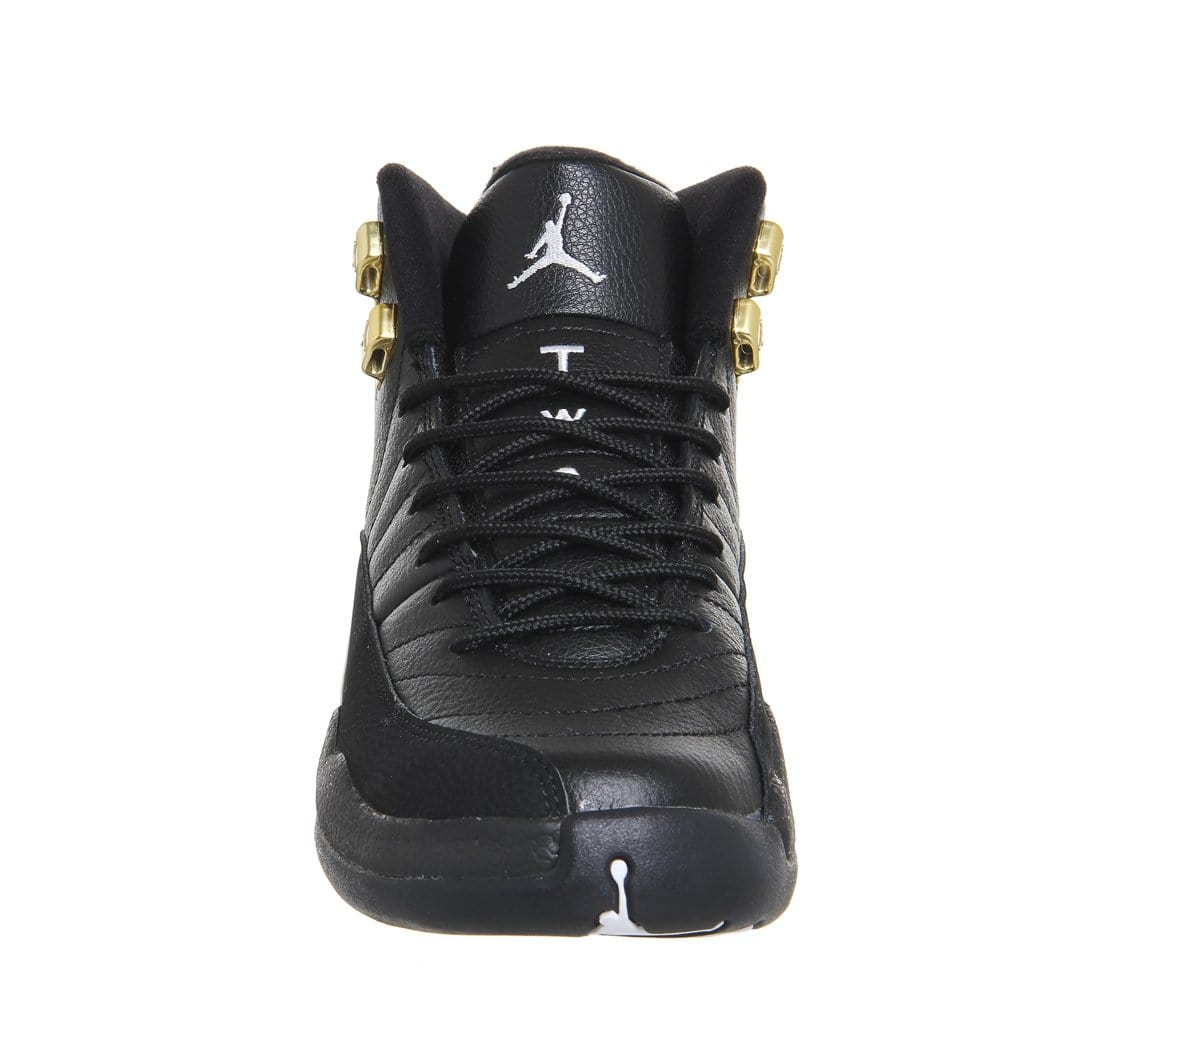 AIR JORDAN 12 RETRO GS - THE MASTER - Kick Game